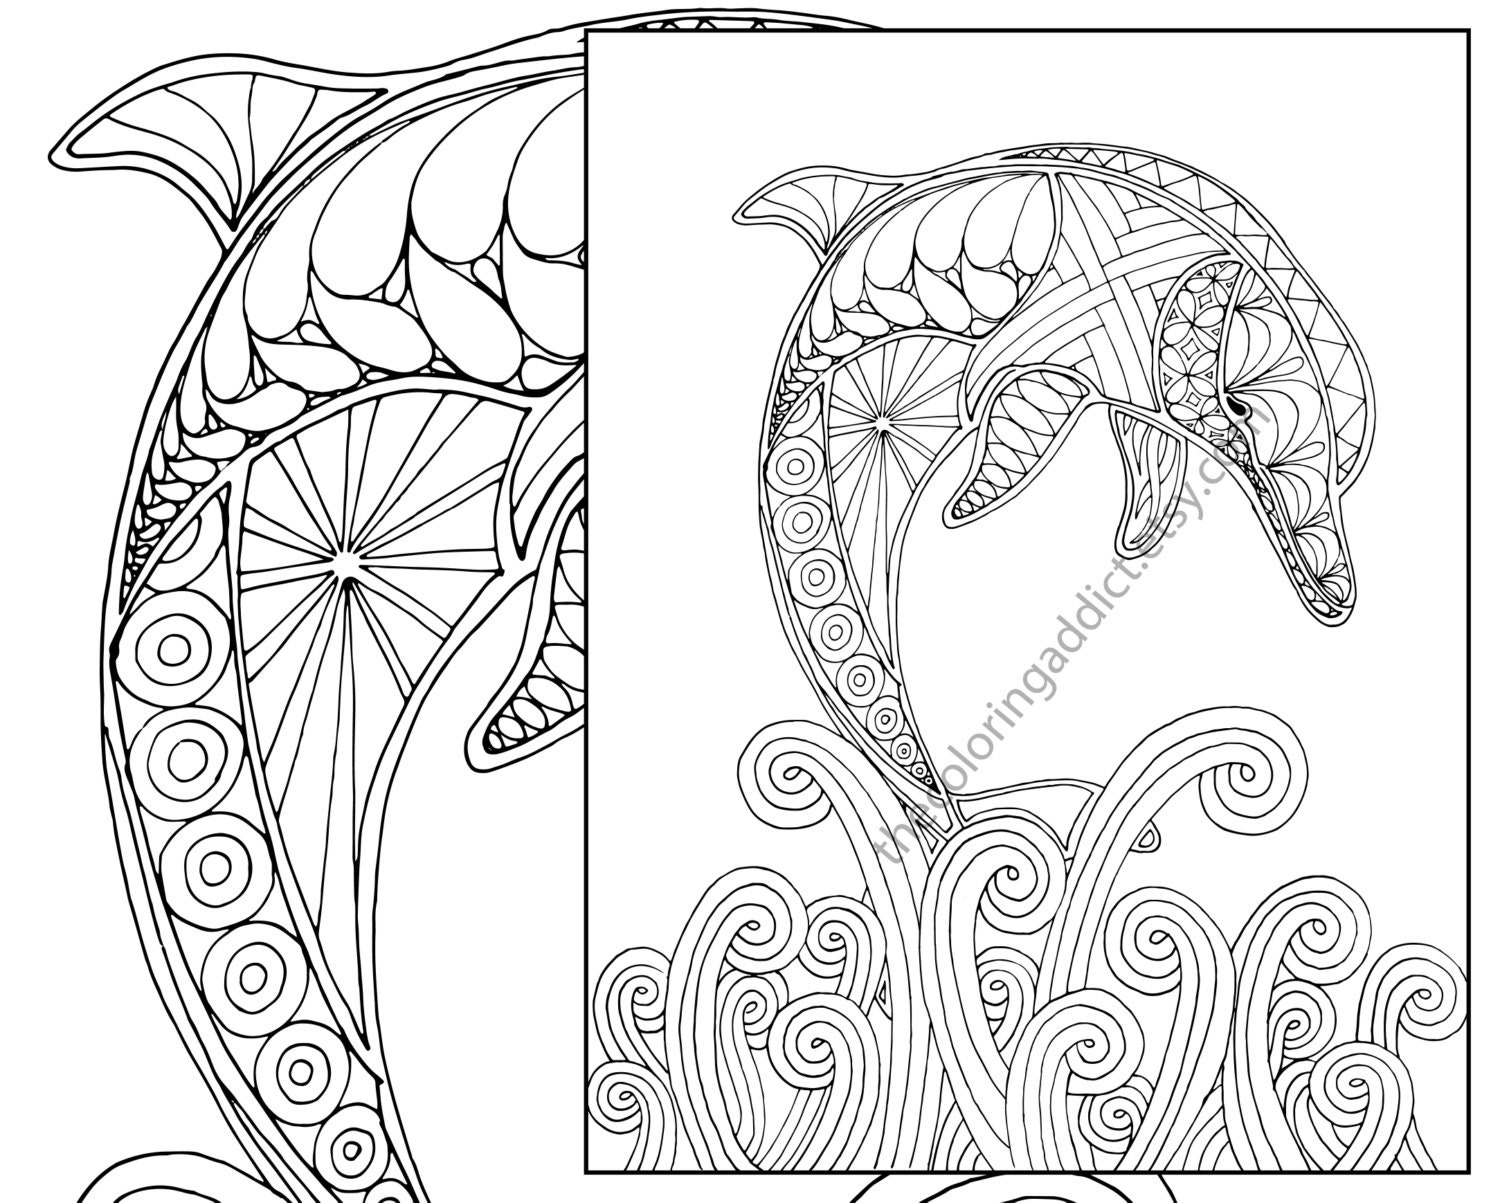 dolphin coloring page adult coloring sheet nautical | Etsy